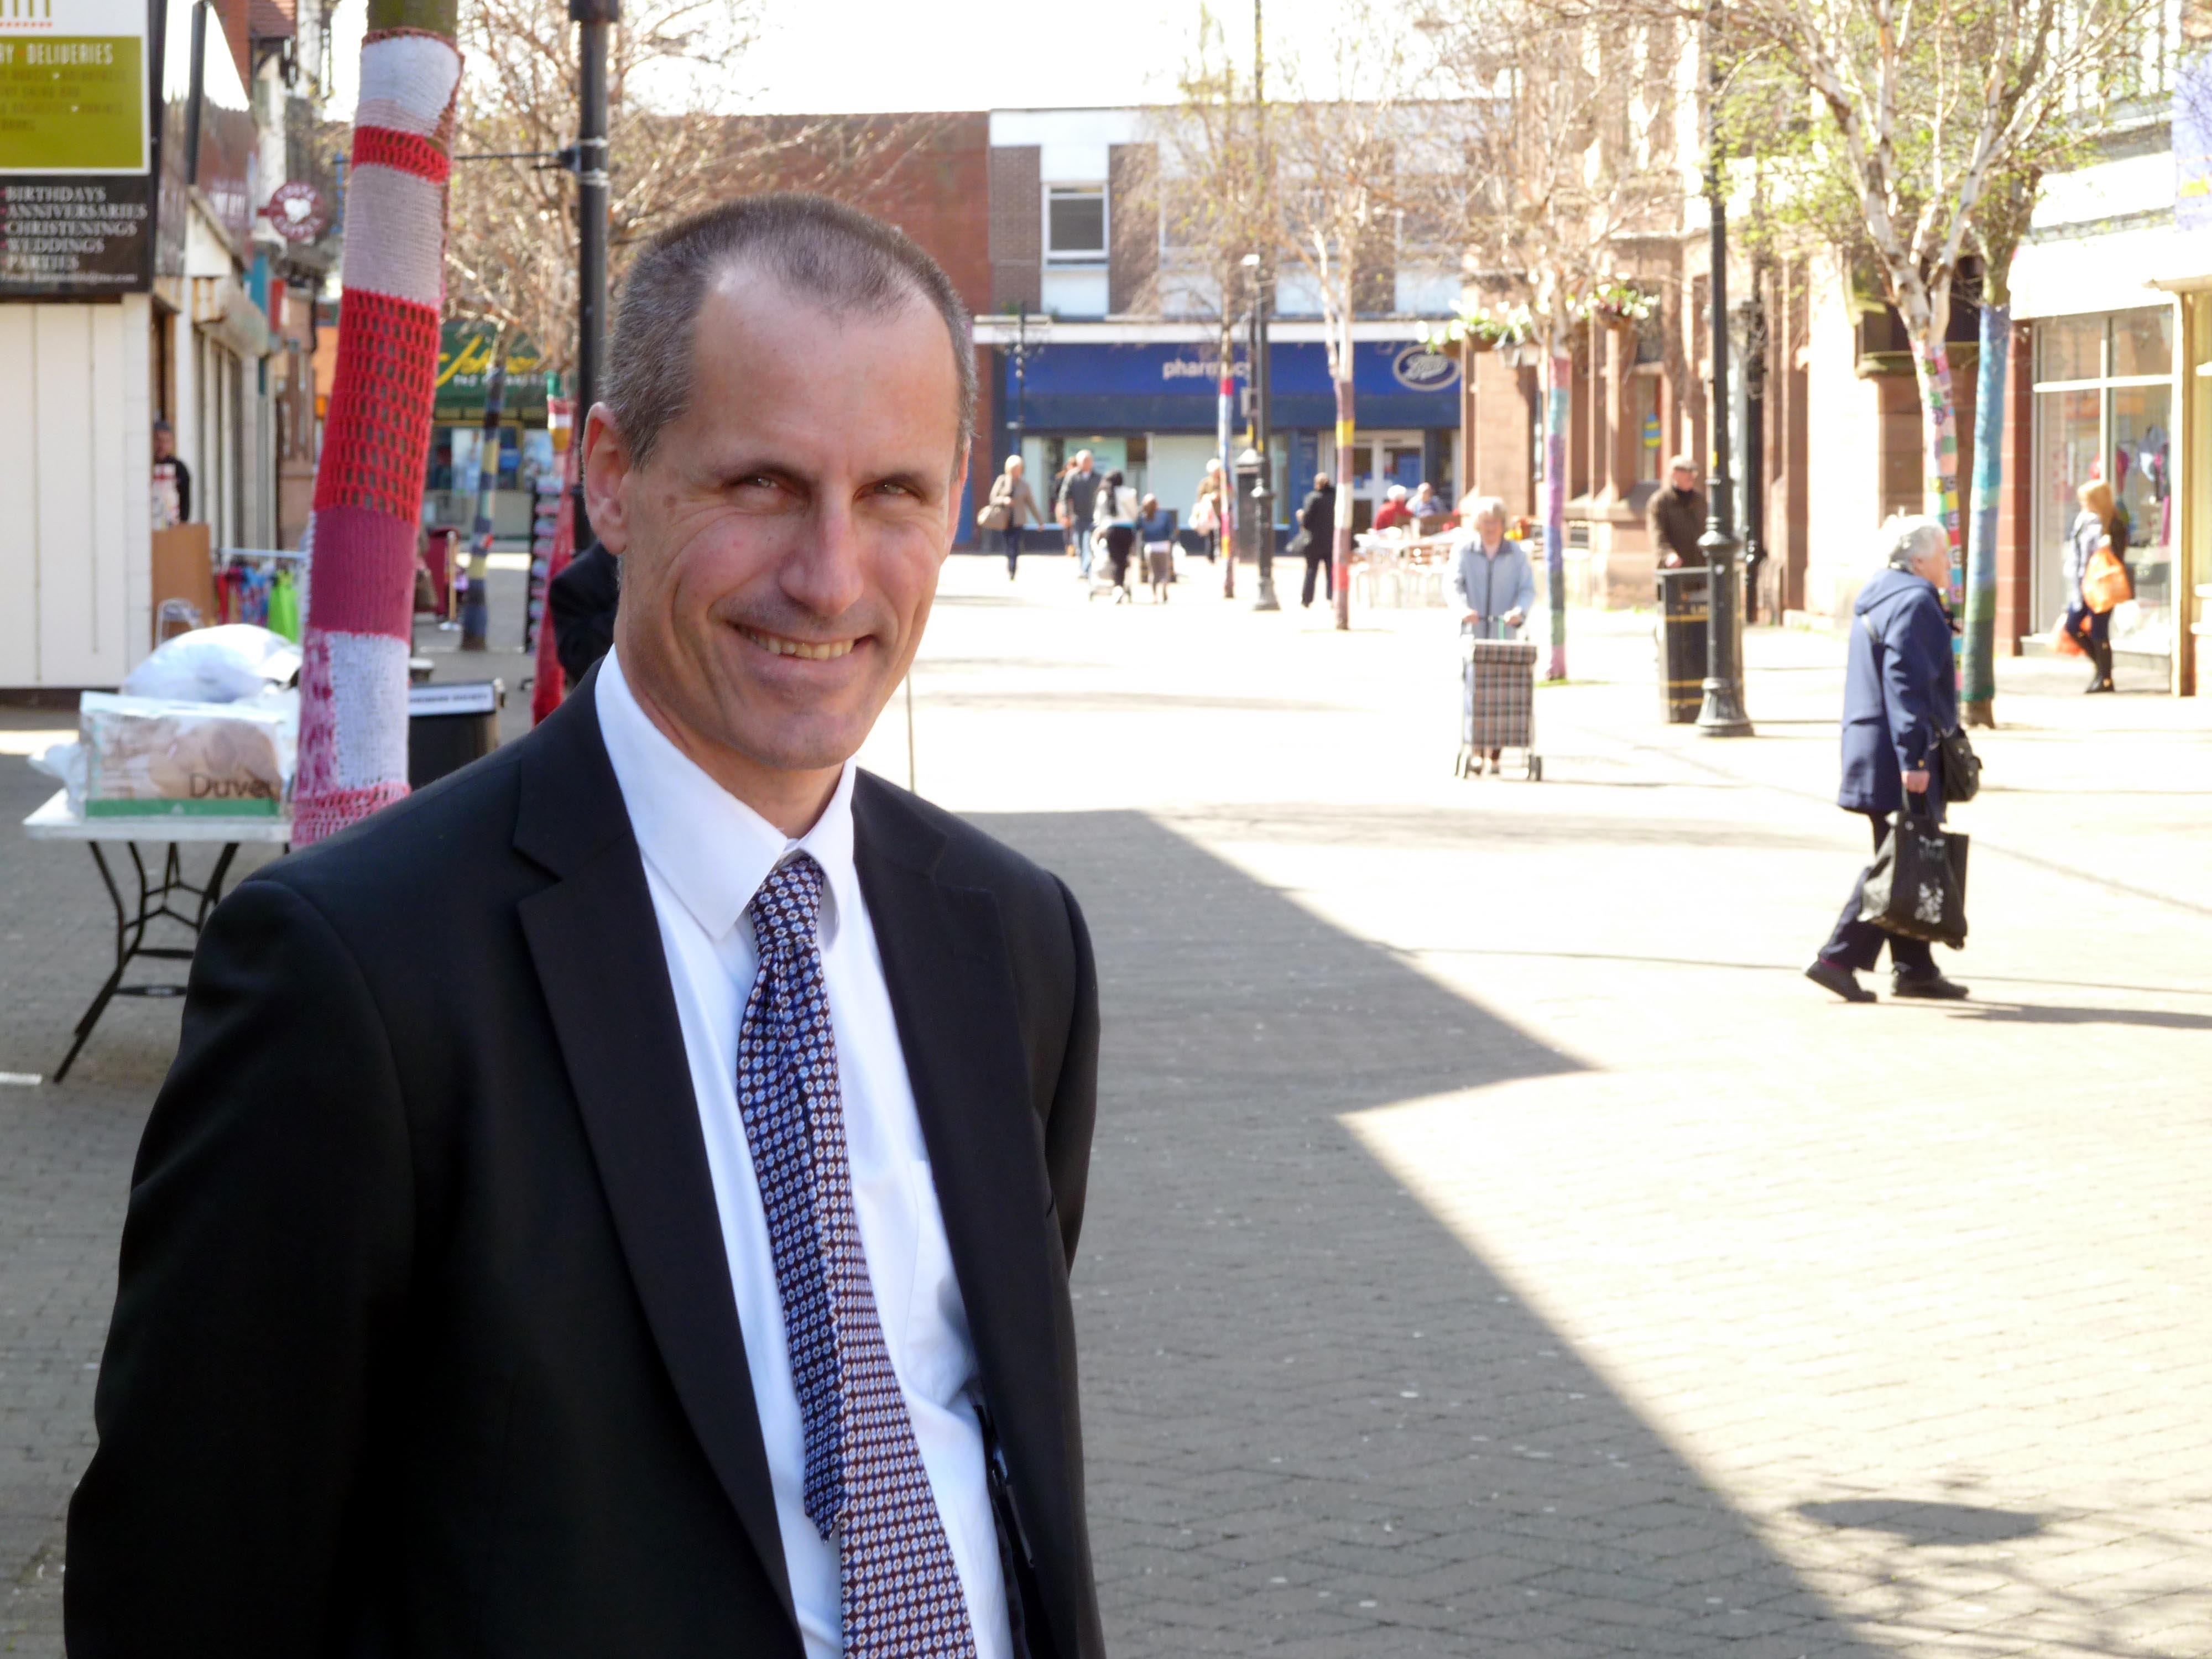 Sefton Central Labour MP Bill Esterson has welcomed news that Sainsbury's are preparing to sell their properties in Crosby Village.